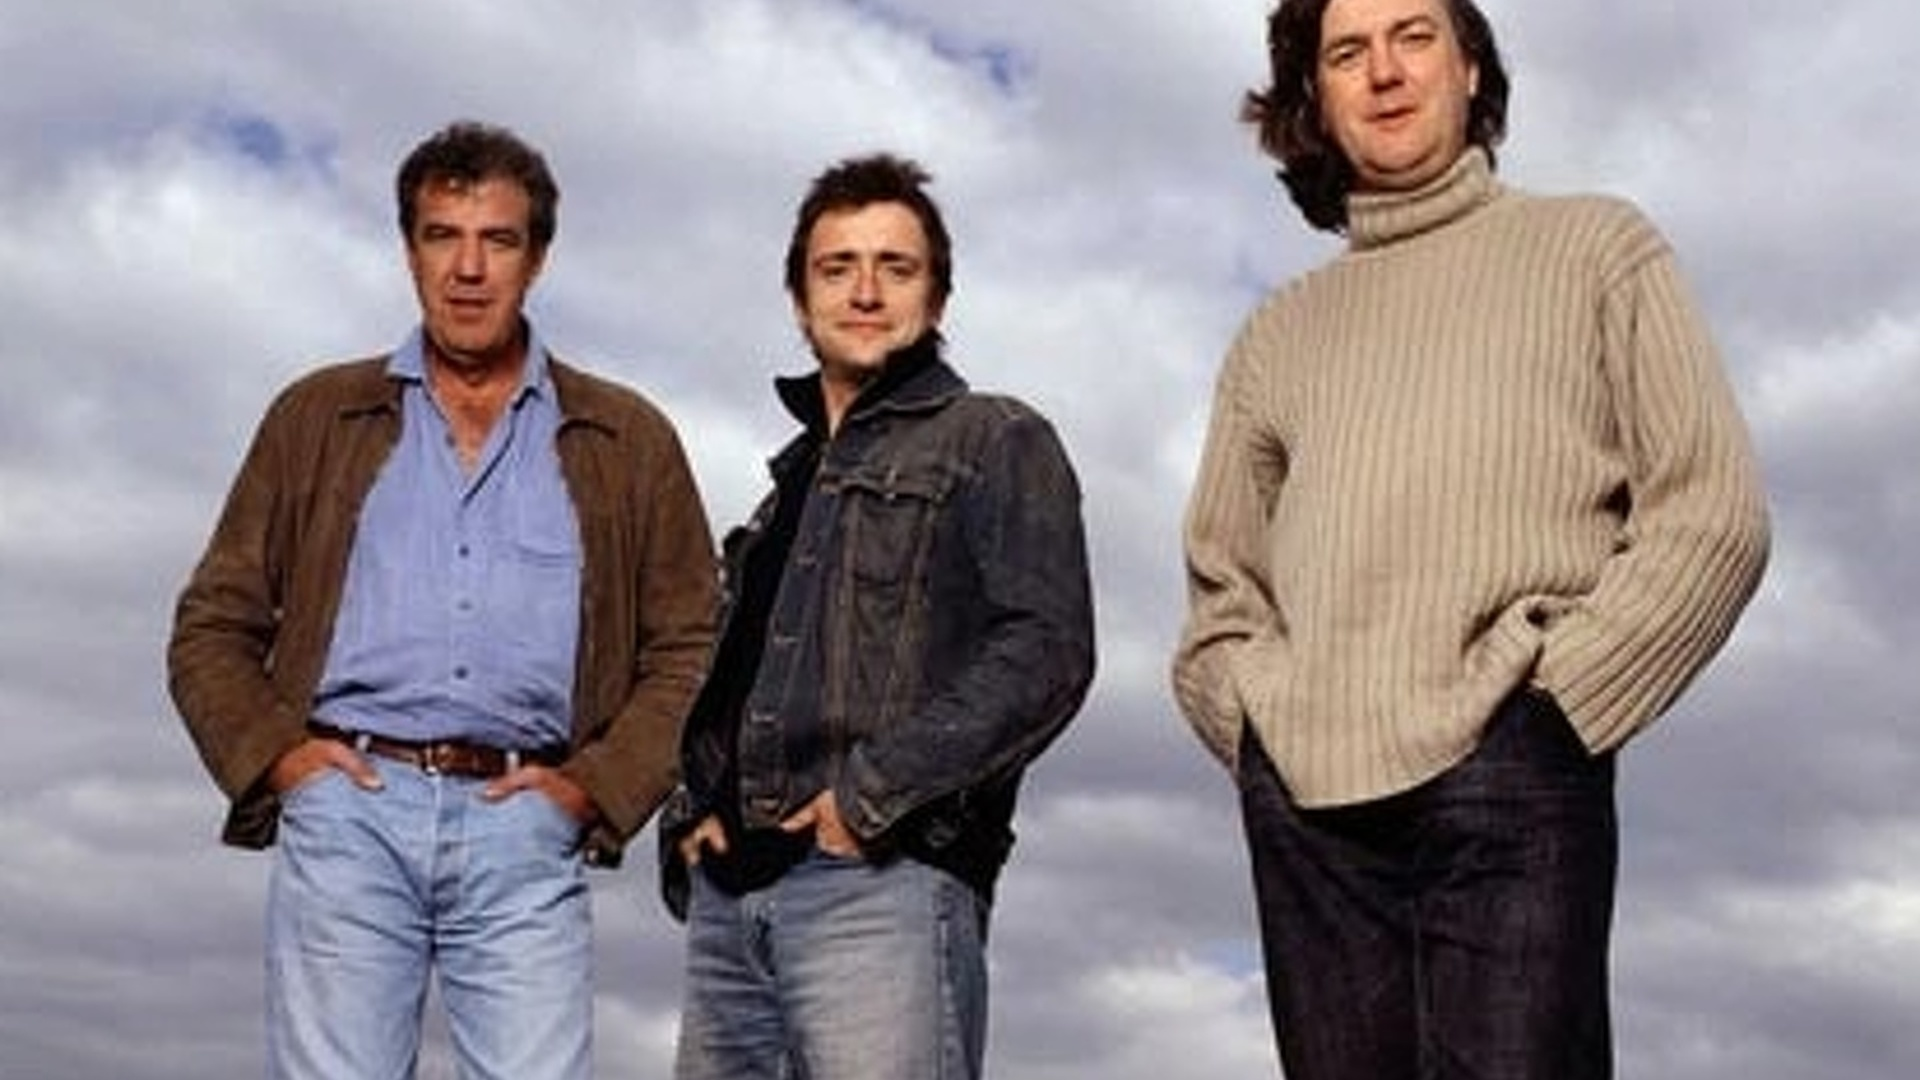 Jeremy Clarkson & Richard Hammond busted for speeding, get banned from driving in France